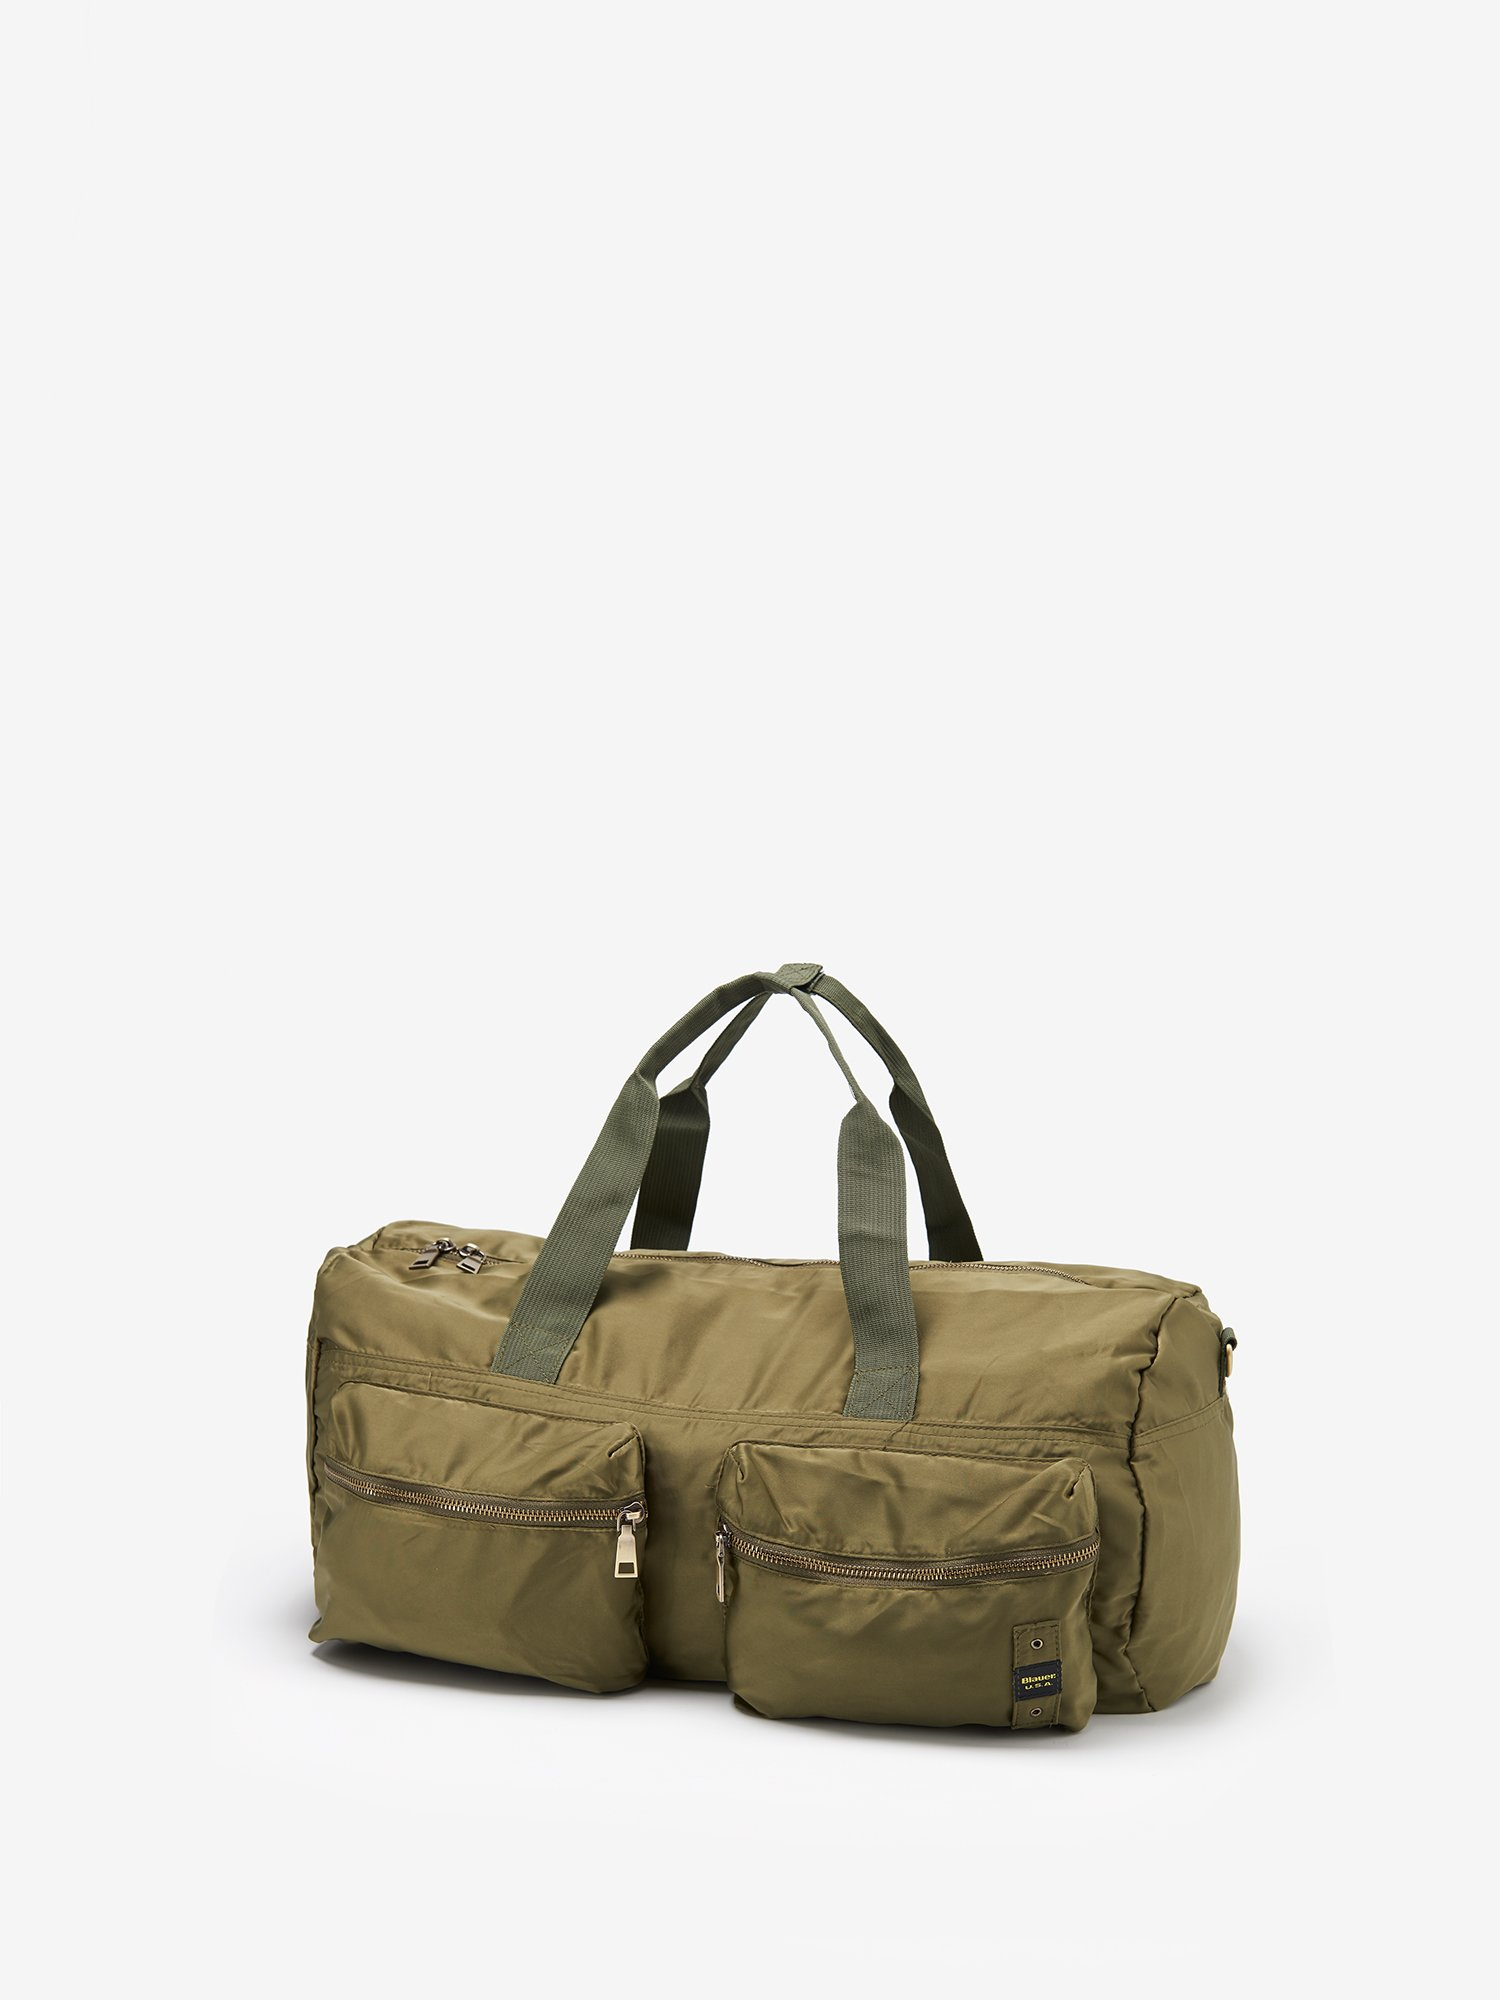 MILITARY BAG WITH POCKETS - Blauer